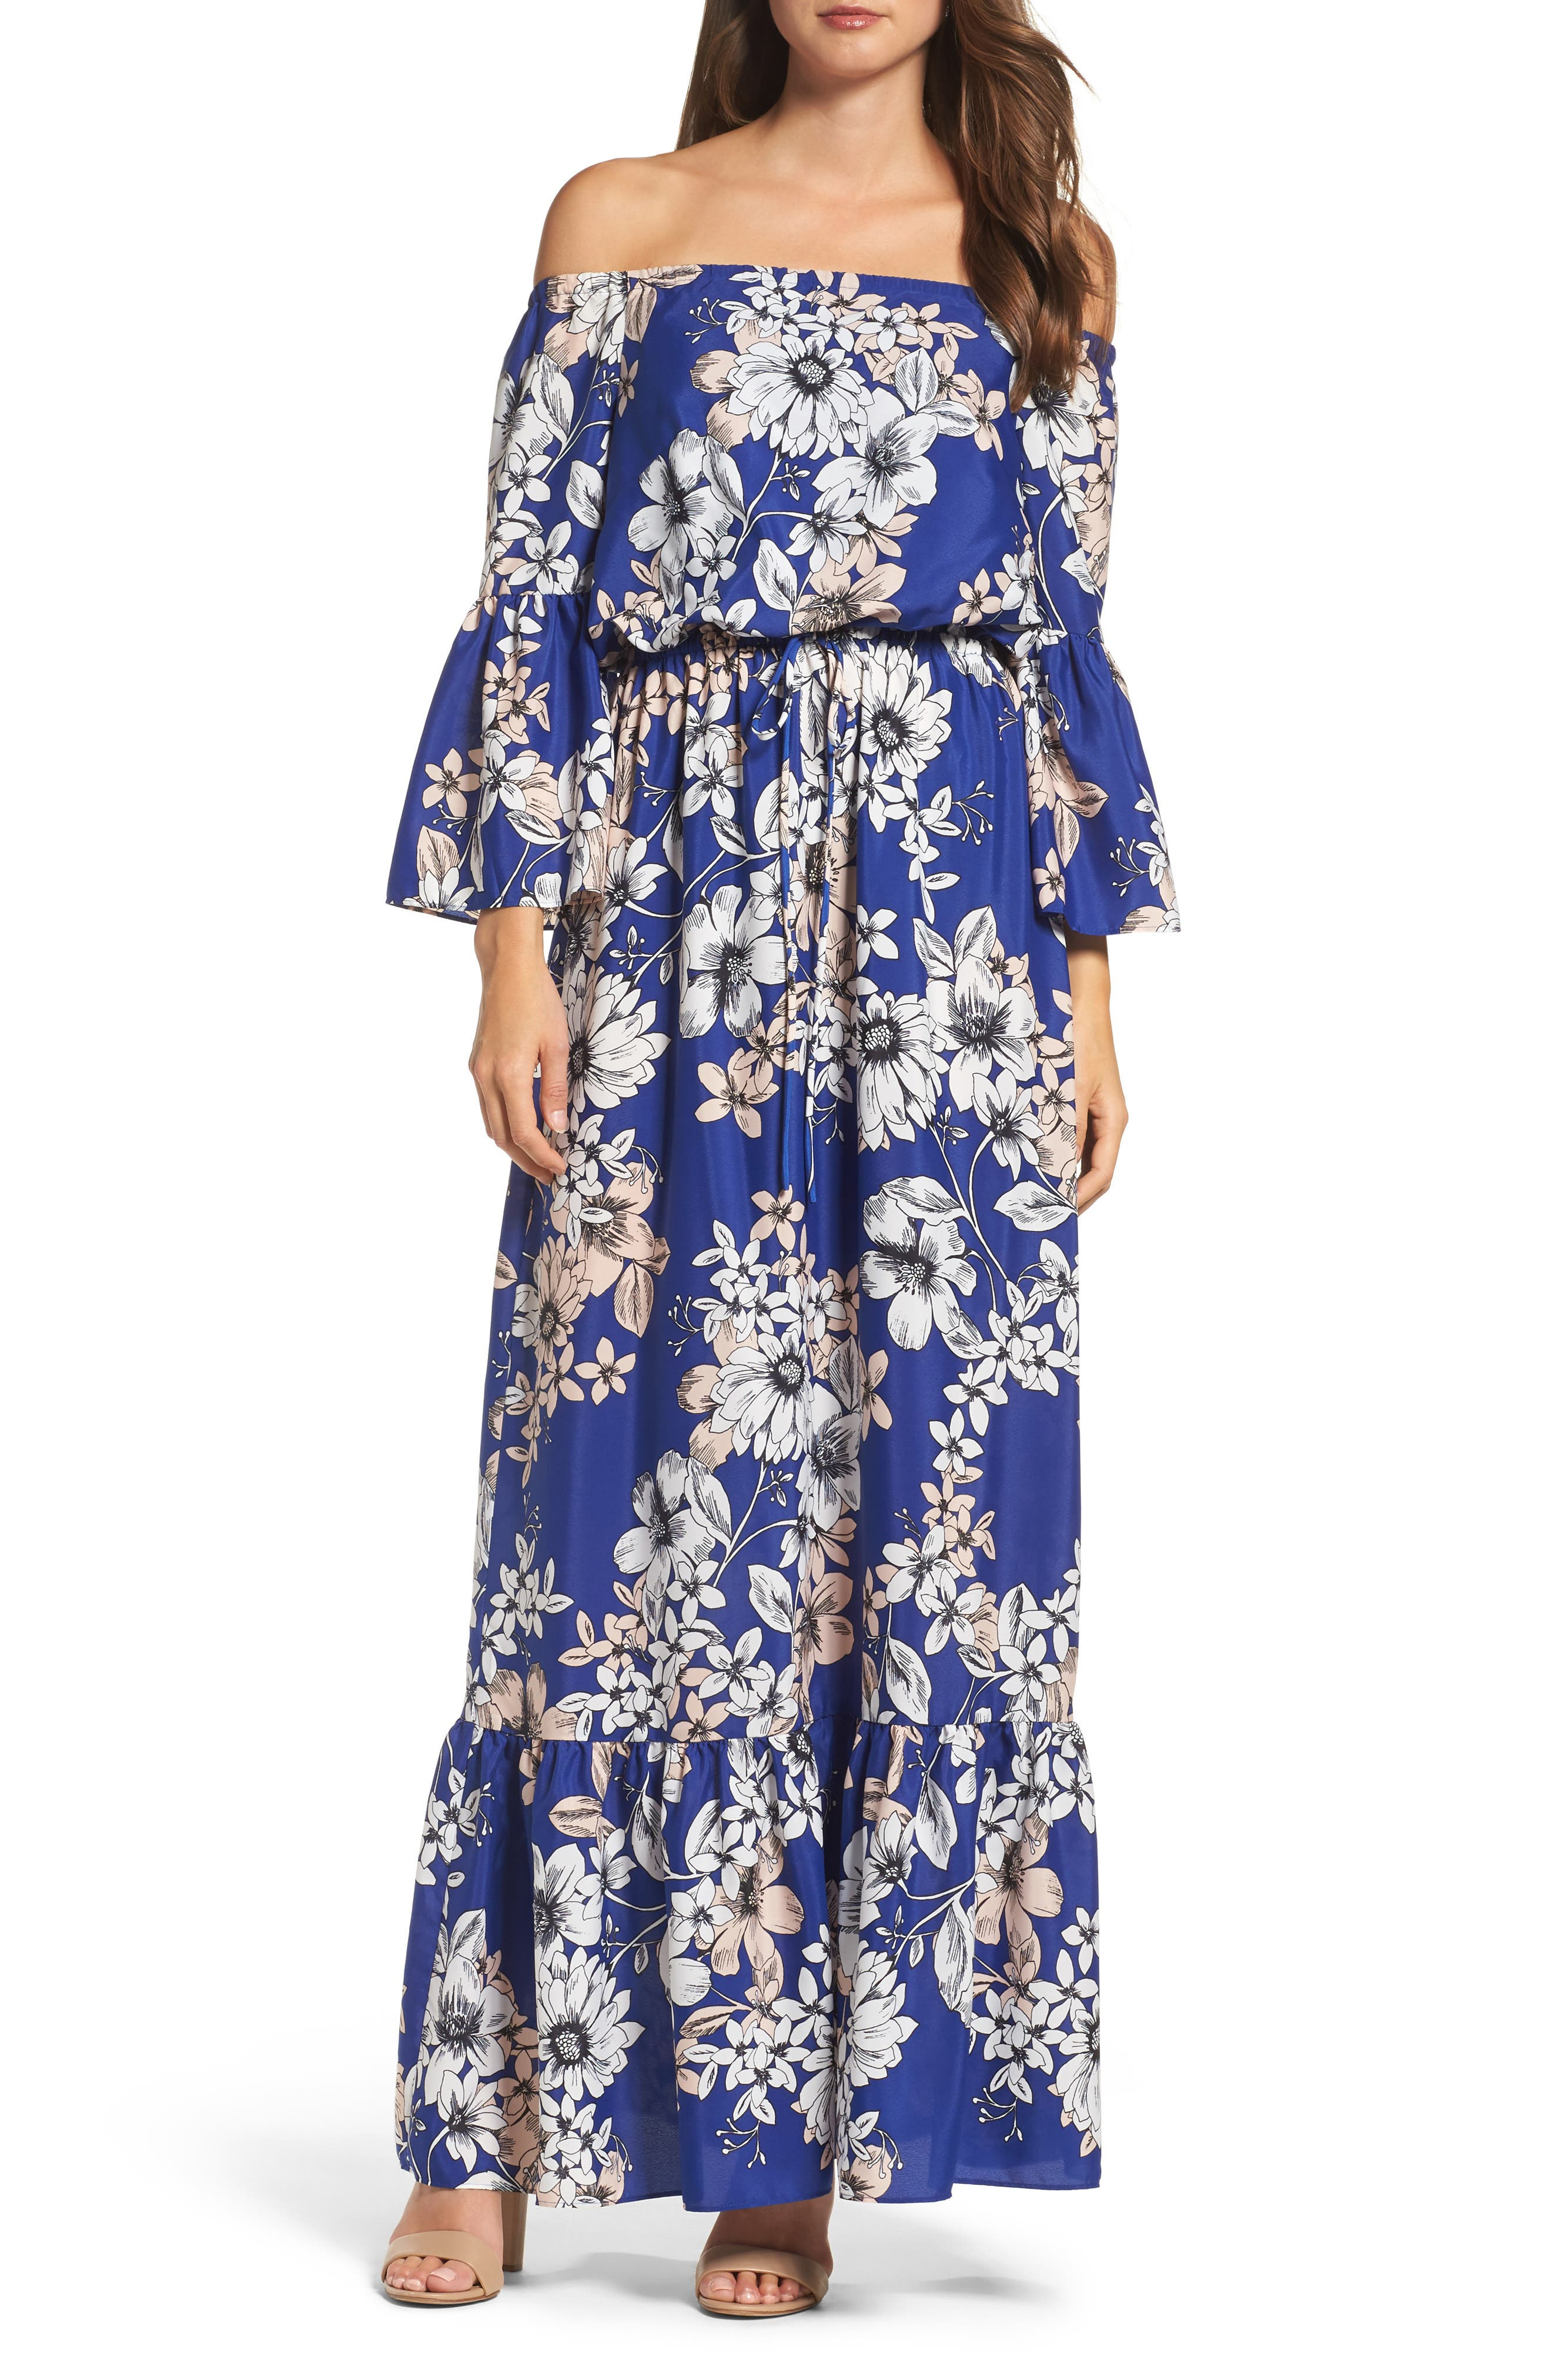 Off the Shoulder Floral Maxi Dress,                         Main,                         color, Cobalt